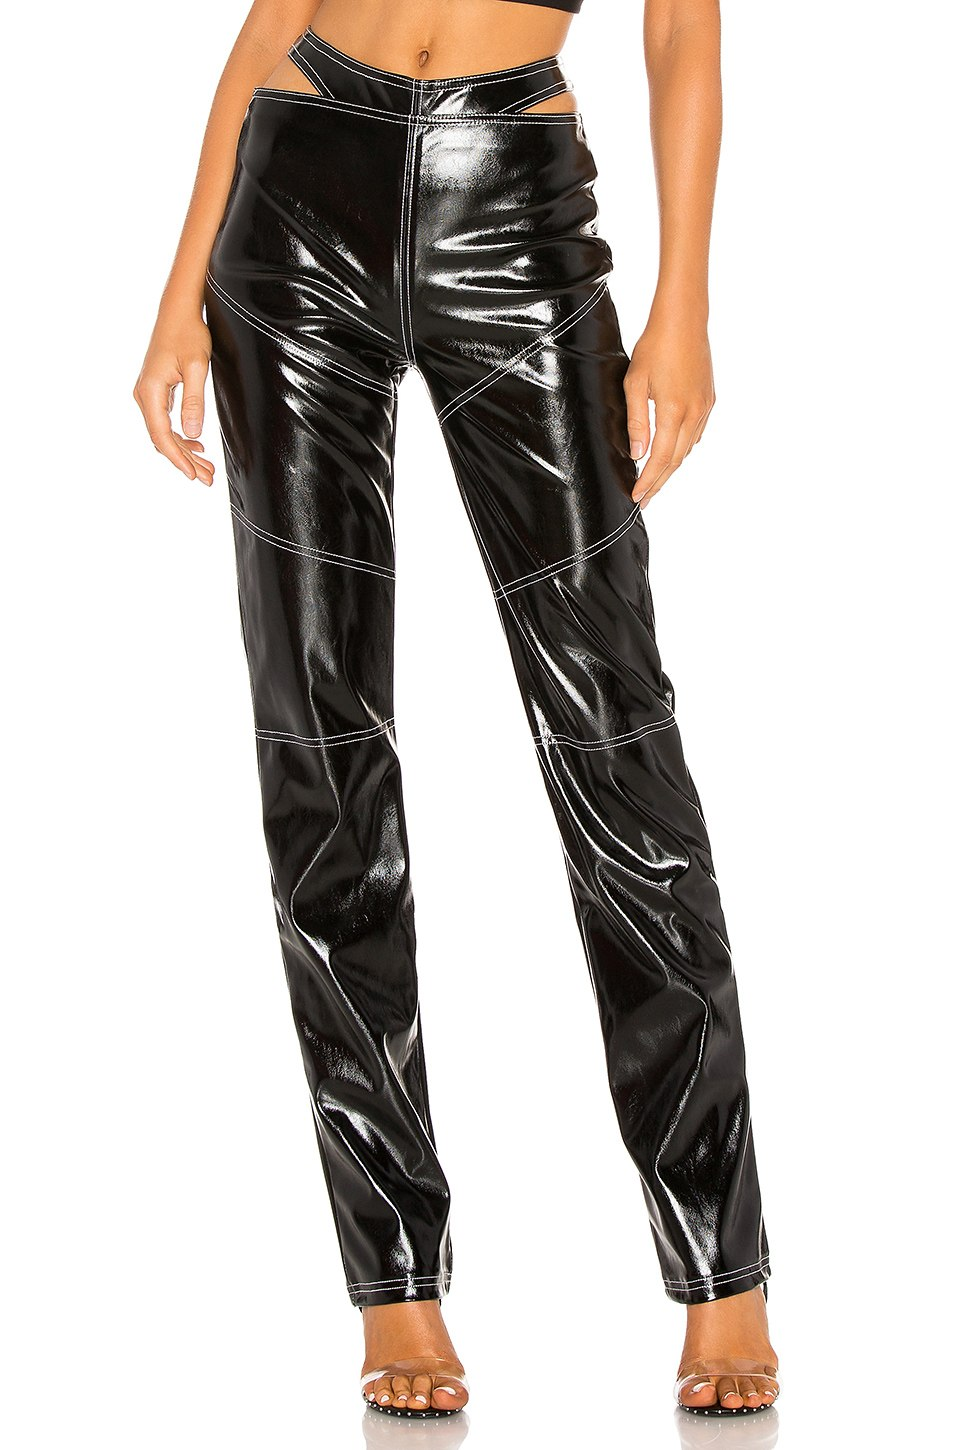 Paris Pant by I.AM.GIA, available on revolve.com for $110 Kendall Jenner Pants Exact Product